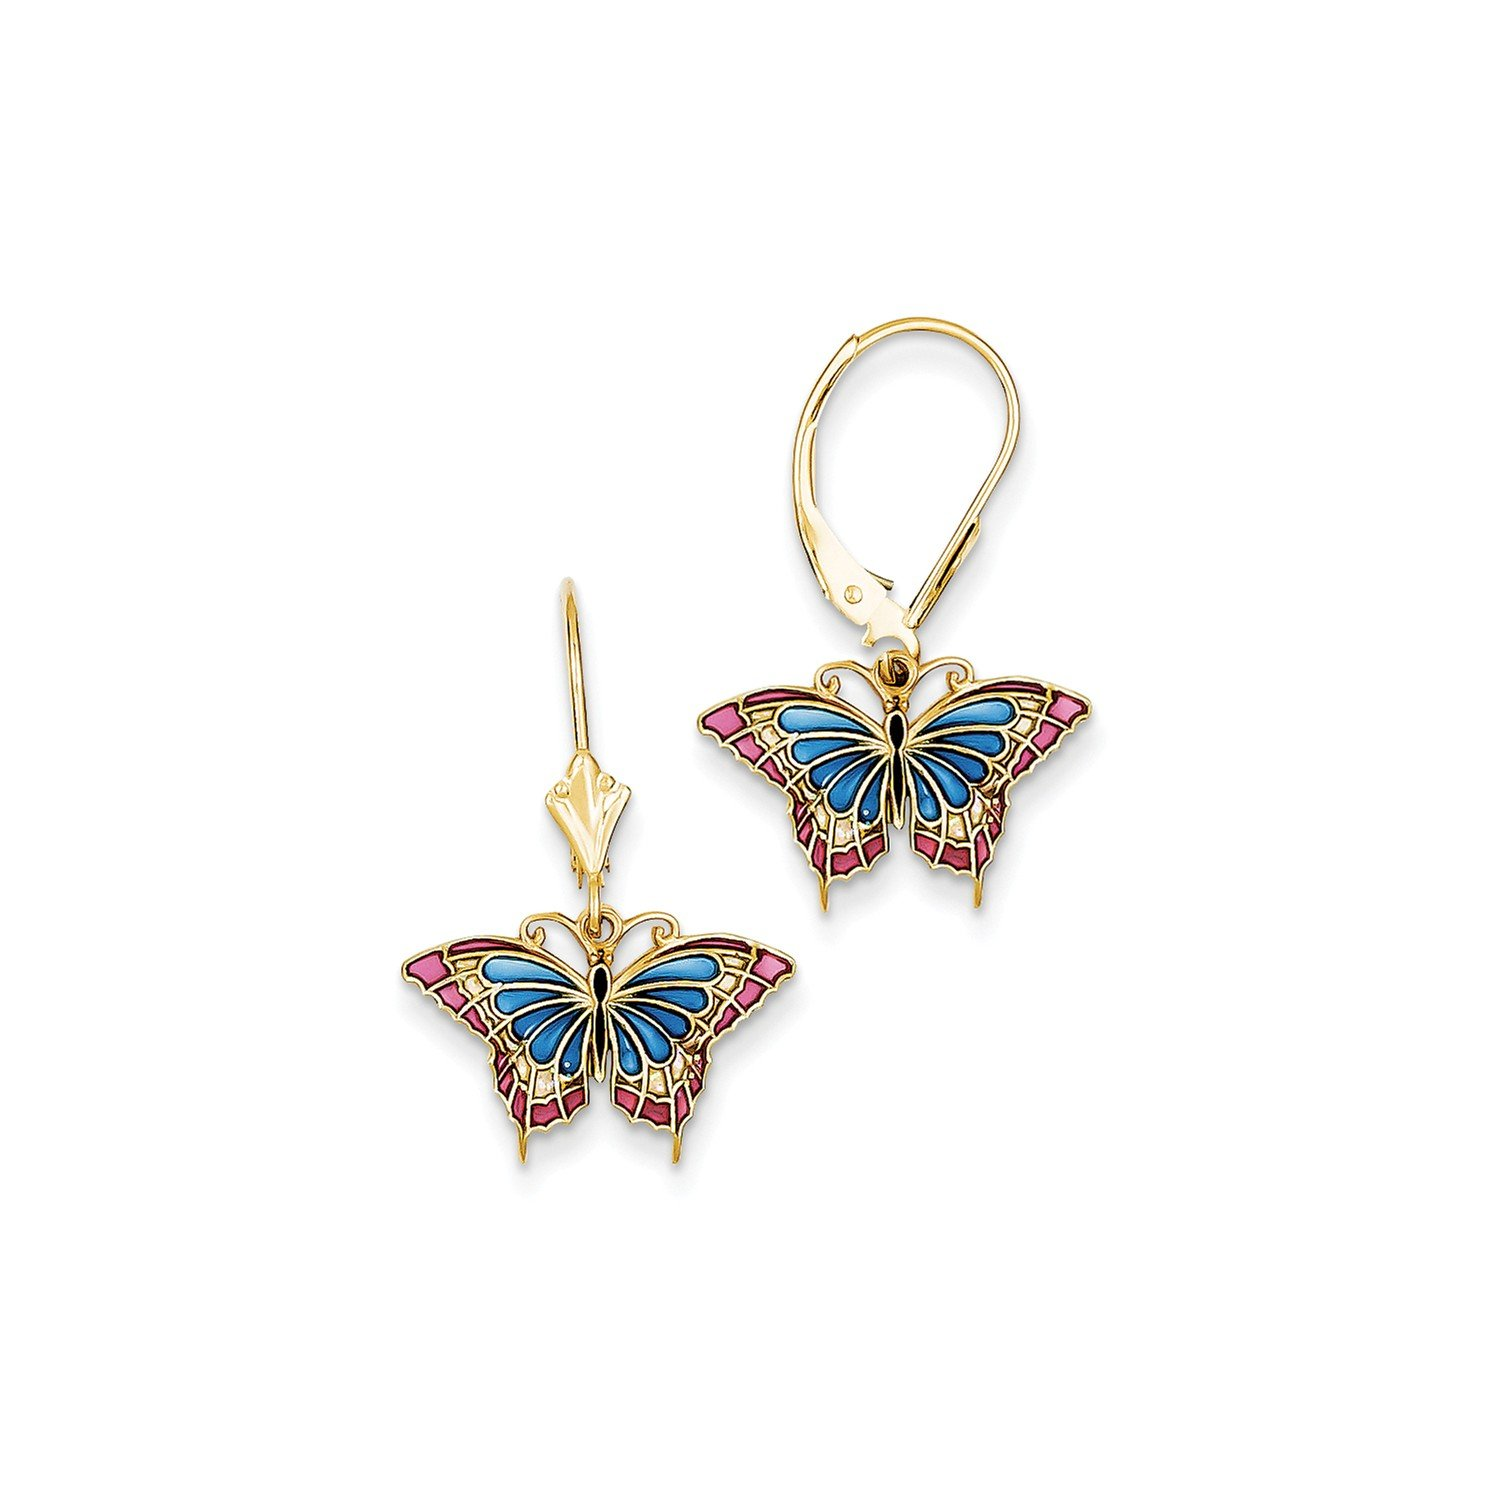 Roy Rose Jewelry 14K Yellow Gold Butterfly w/ Blue Stained Glass Leverback Earrings by Roy Rose Jewelry